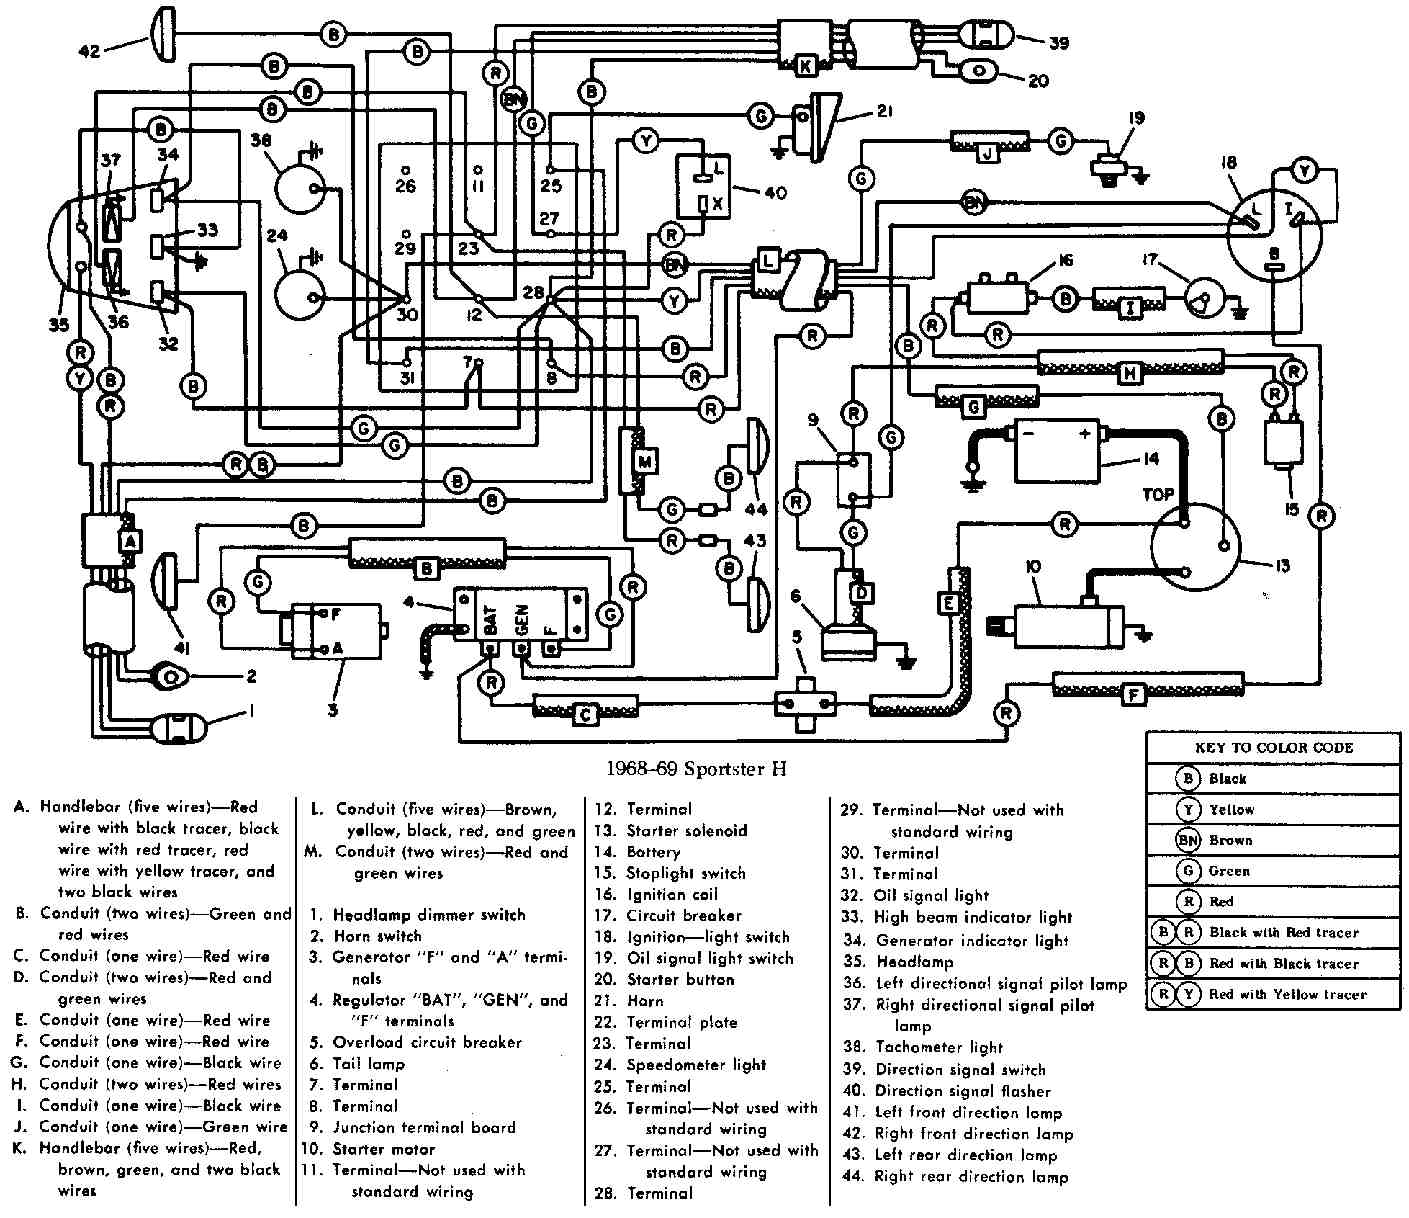 69 harley golf cart wiring diagram wiring diagram autovehicle 1969 harley electra glide wiring diagram data diagram schematic 69 harley golf cart